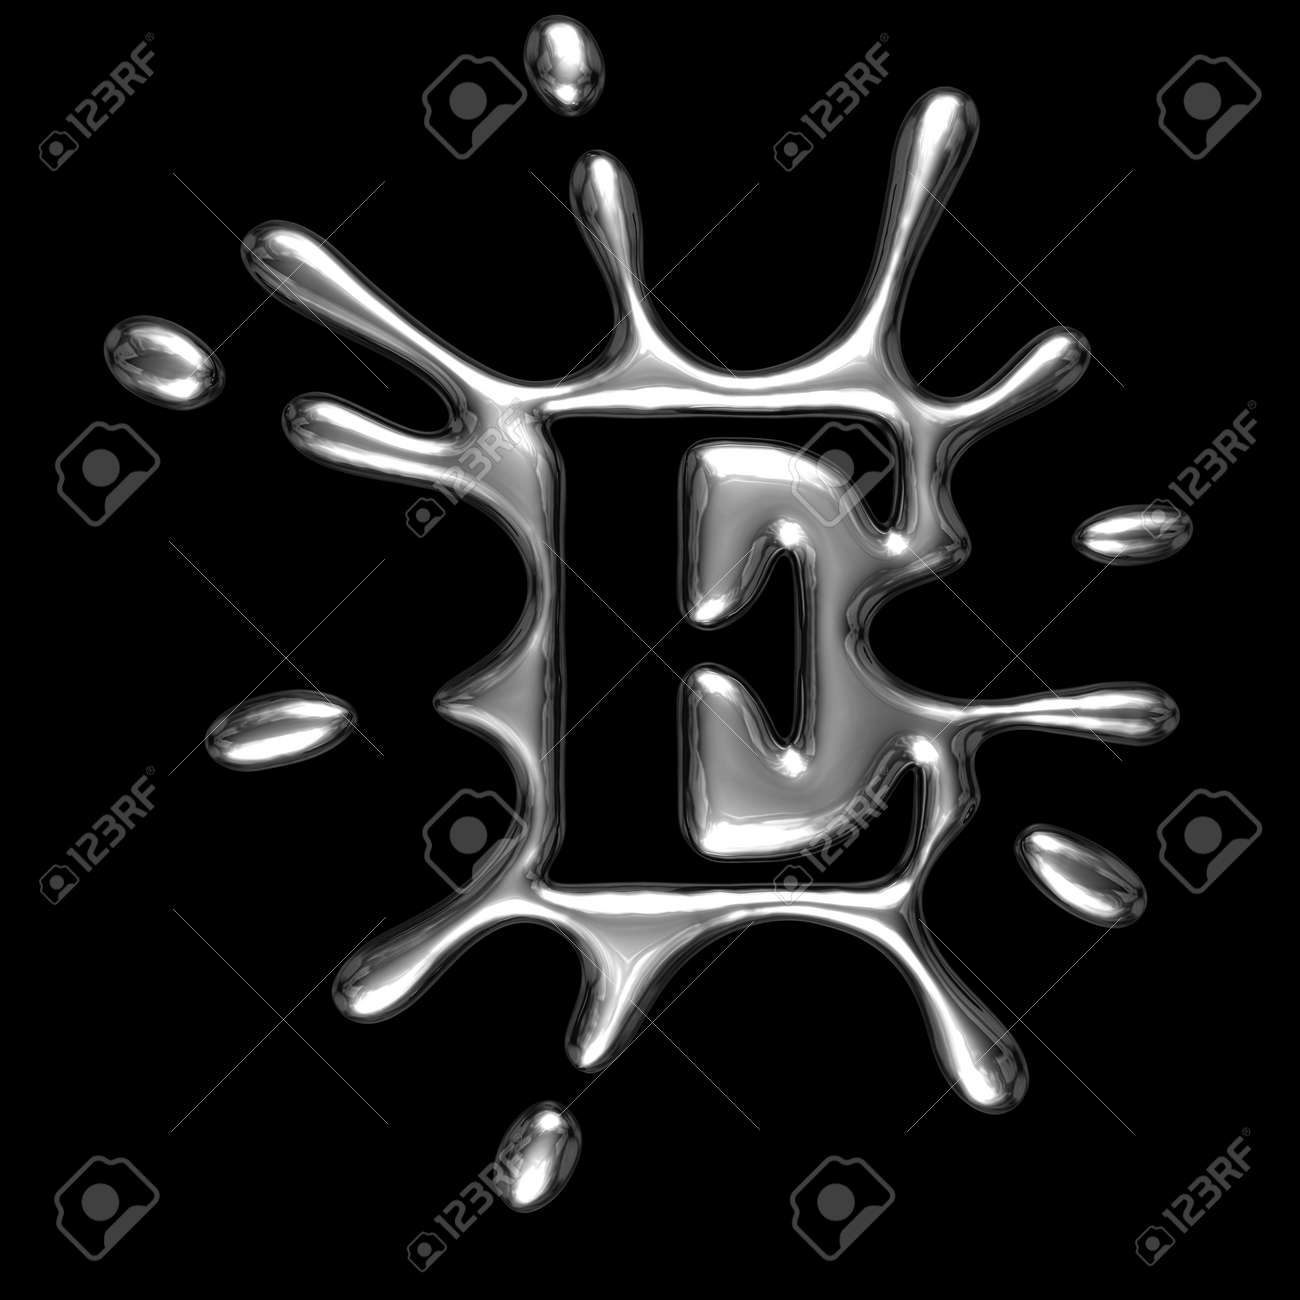 Background image e - Liquid Metal Letter E Alphabet Symbol Isolated On A Black Background With Path